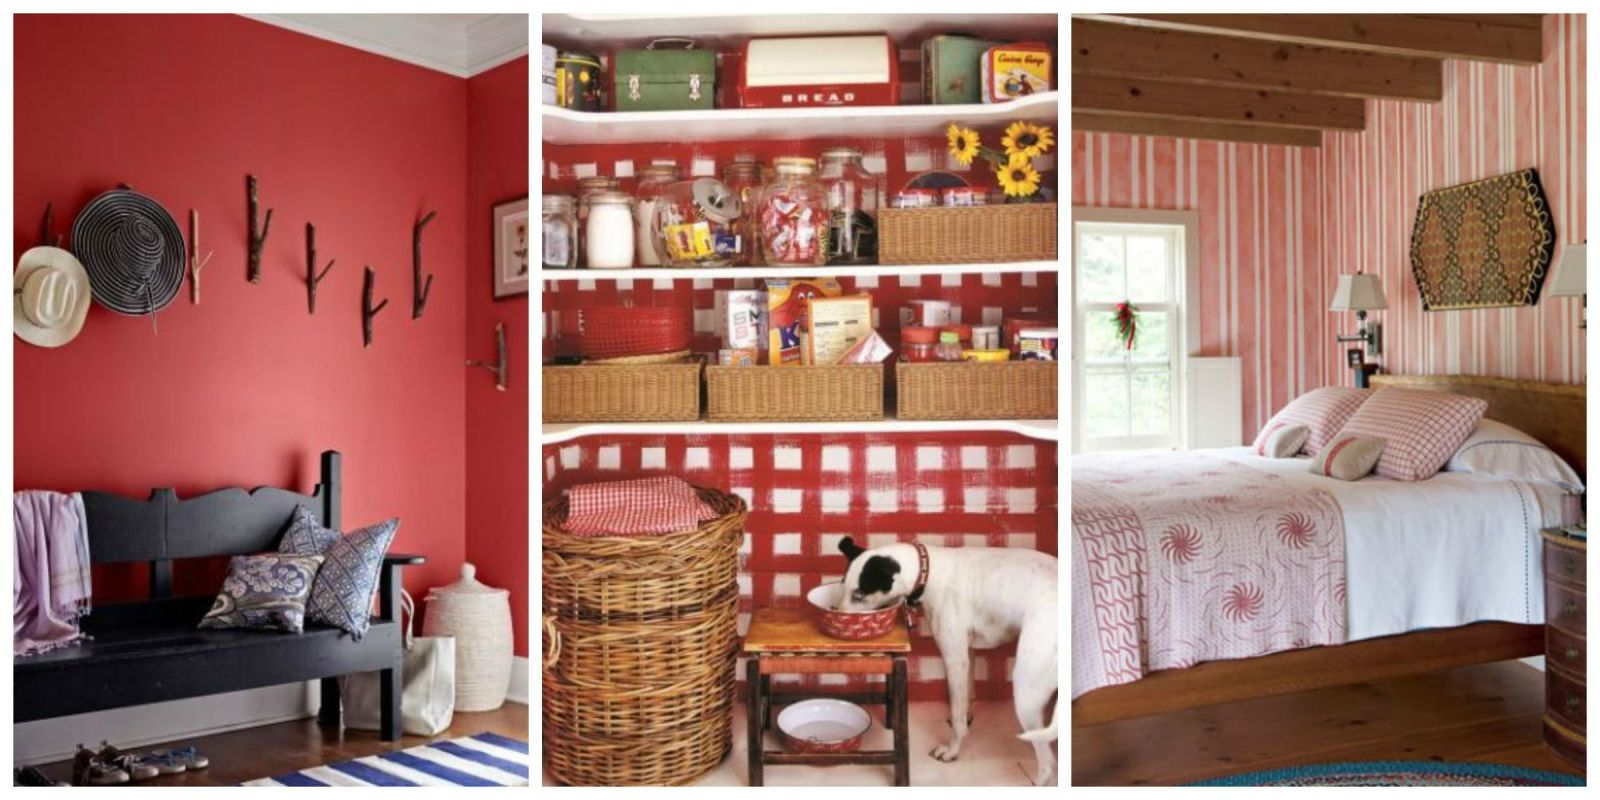 Bedroom Ideas In Red decorating with red - ideas for red rooms and home decor